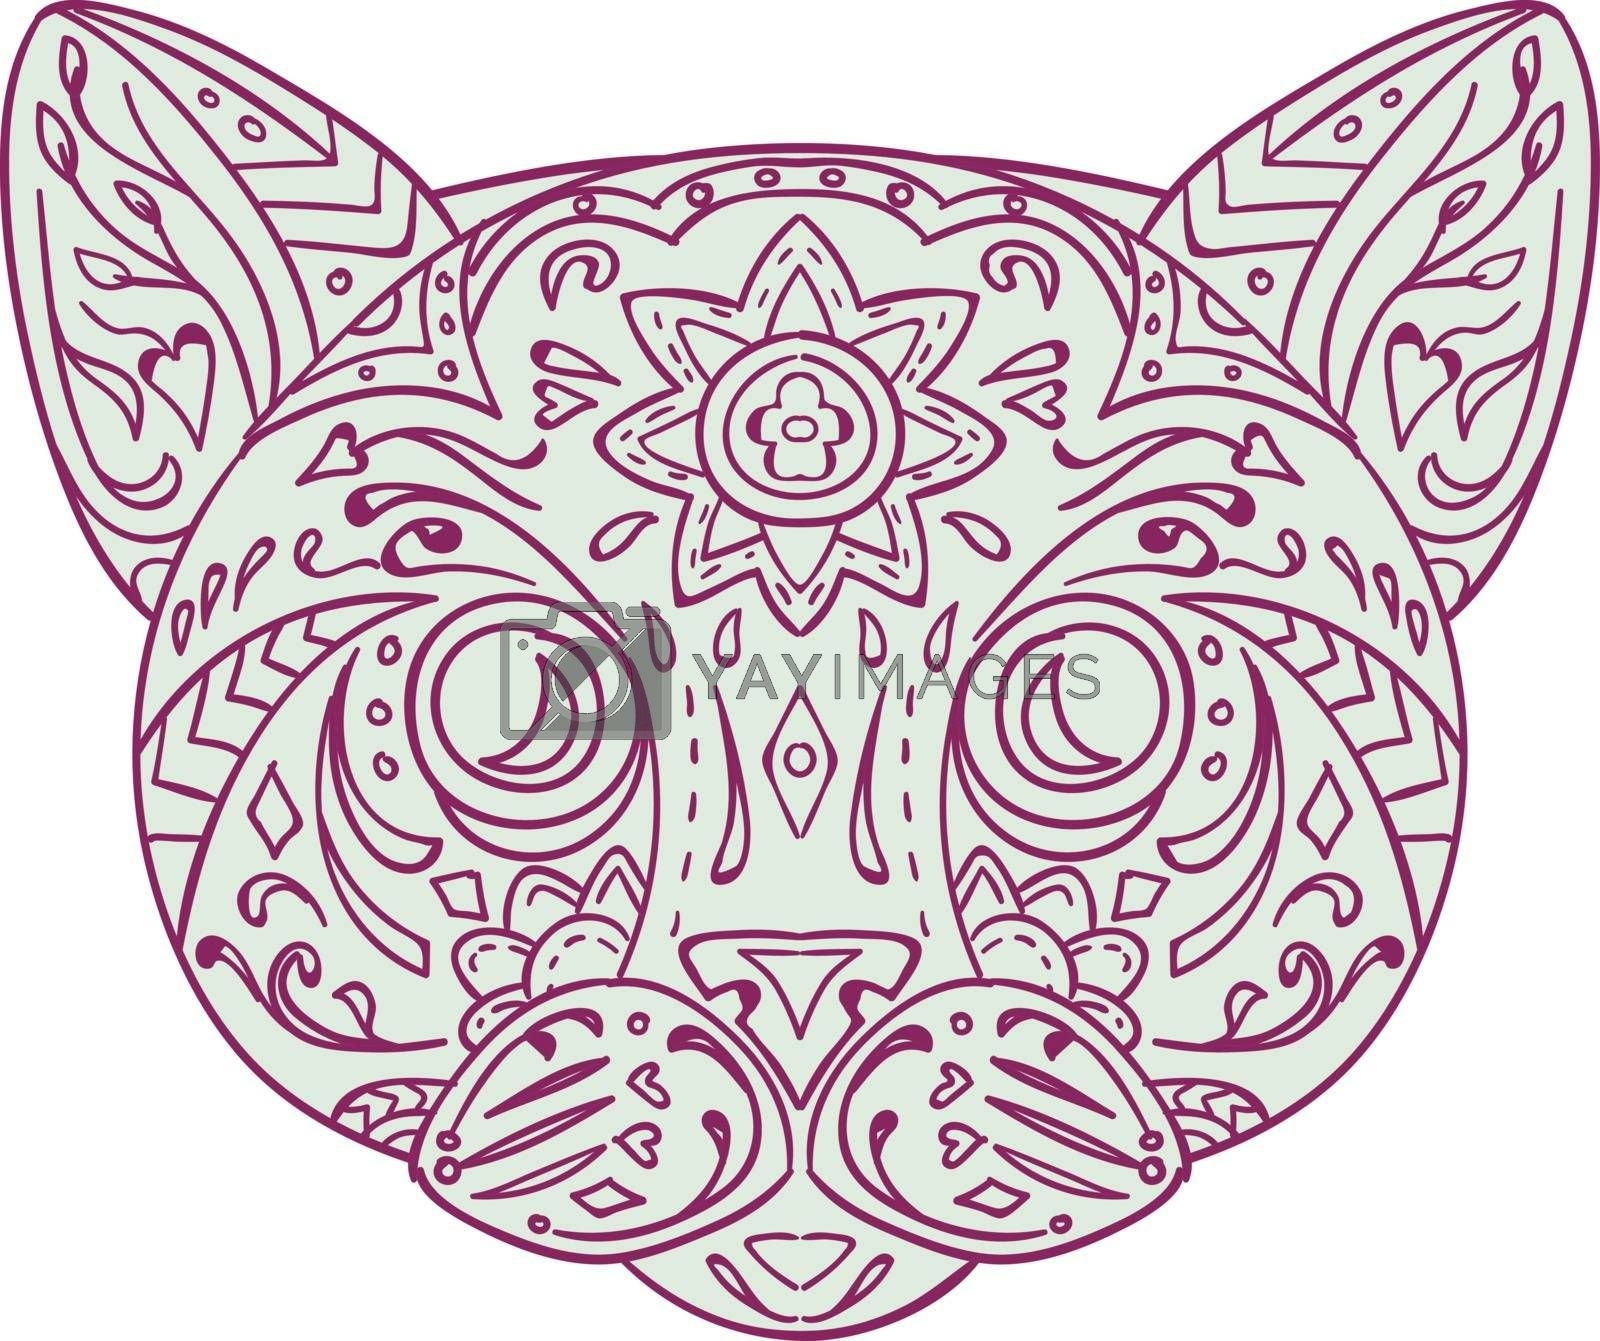 Mandala style illustration of a cat head  viewed from front set on isolated white background.